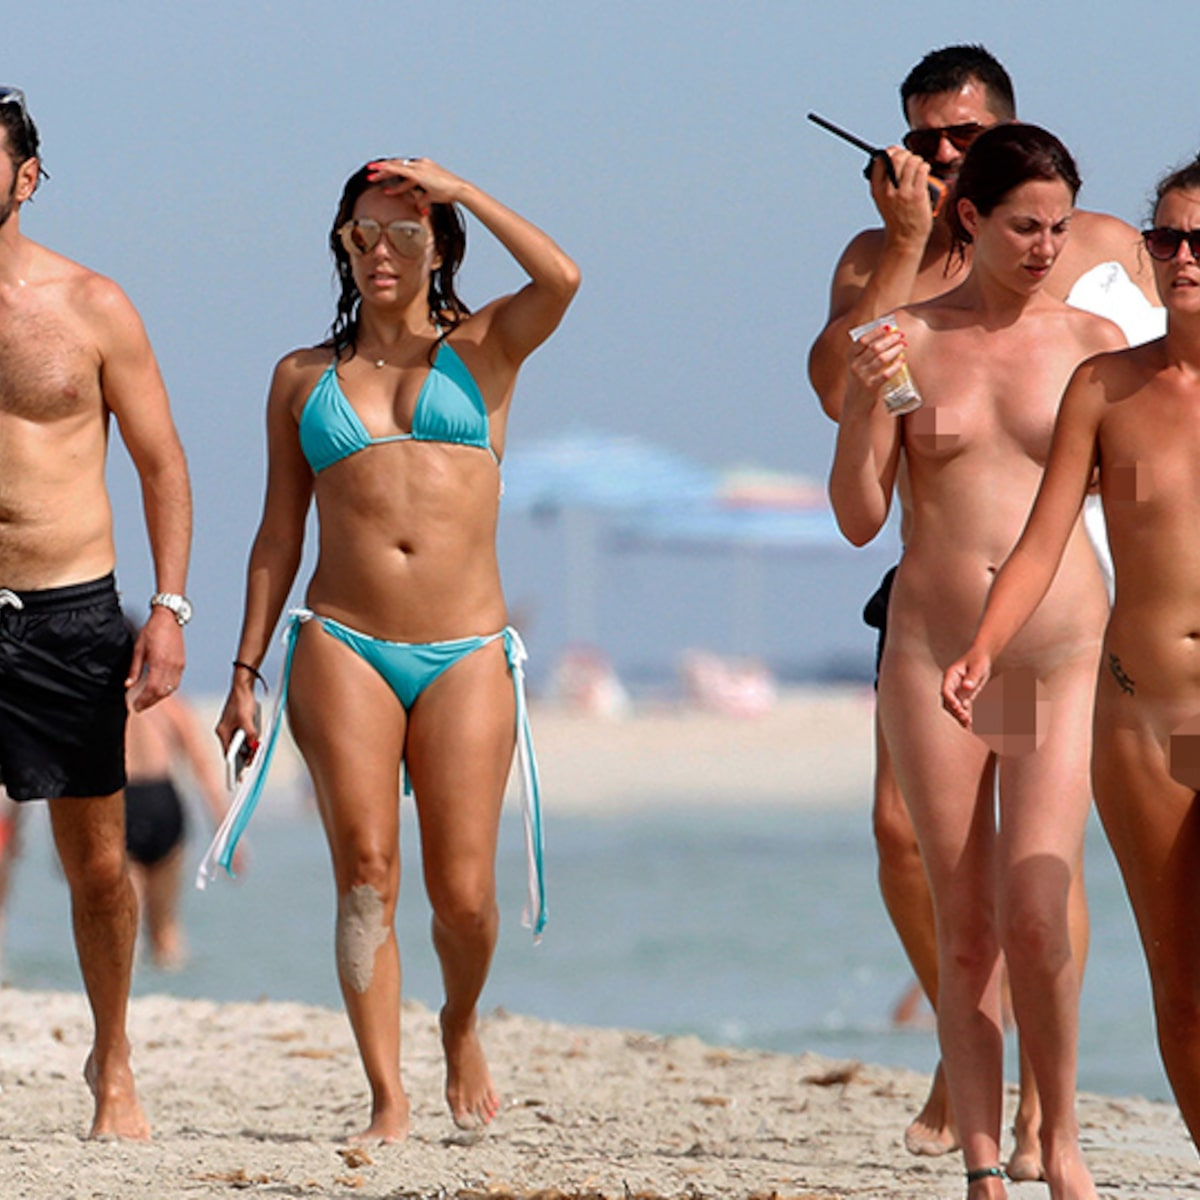 Eva Longoria Missed the Memo on Nude Beaches